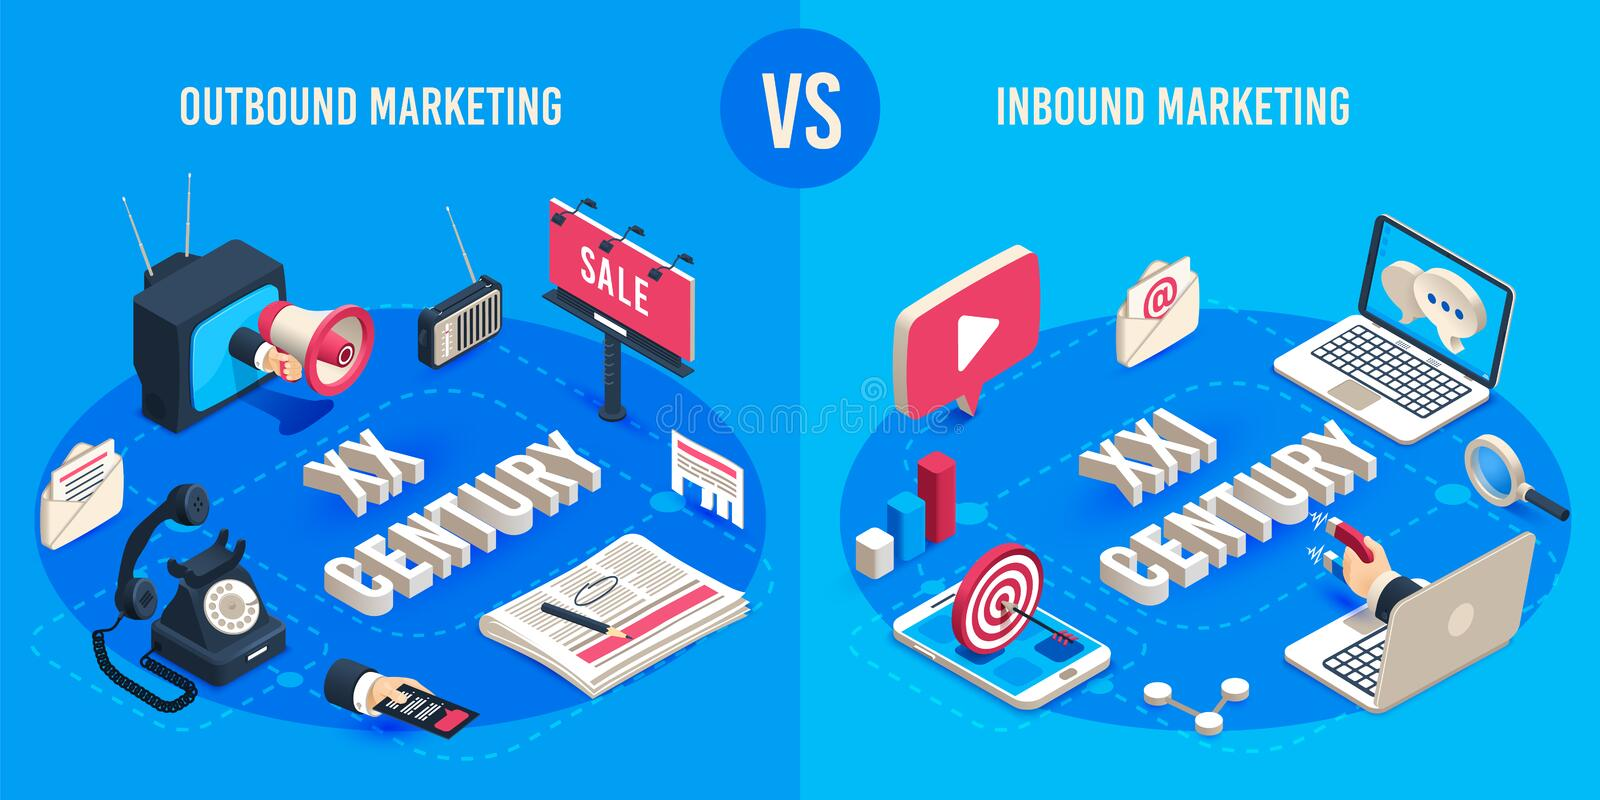 Outbound and inbound marketing. Isometric market advertising generations, online markets sales magnet and ads megaphone vector illustration